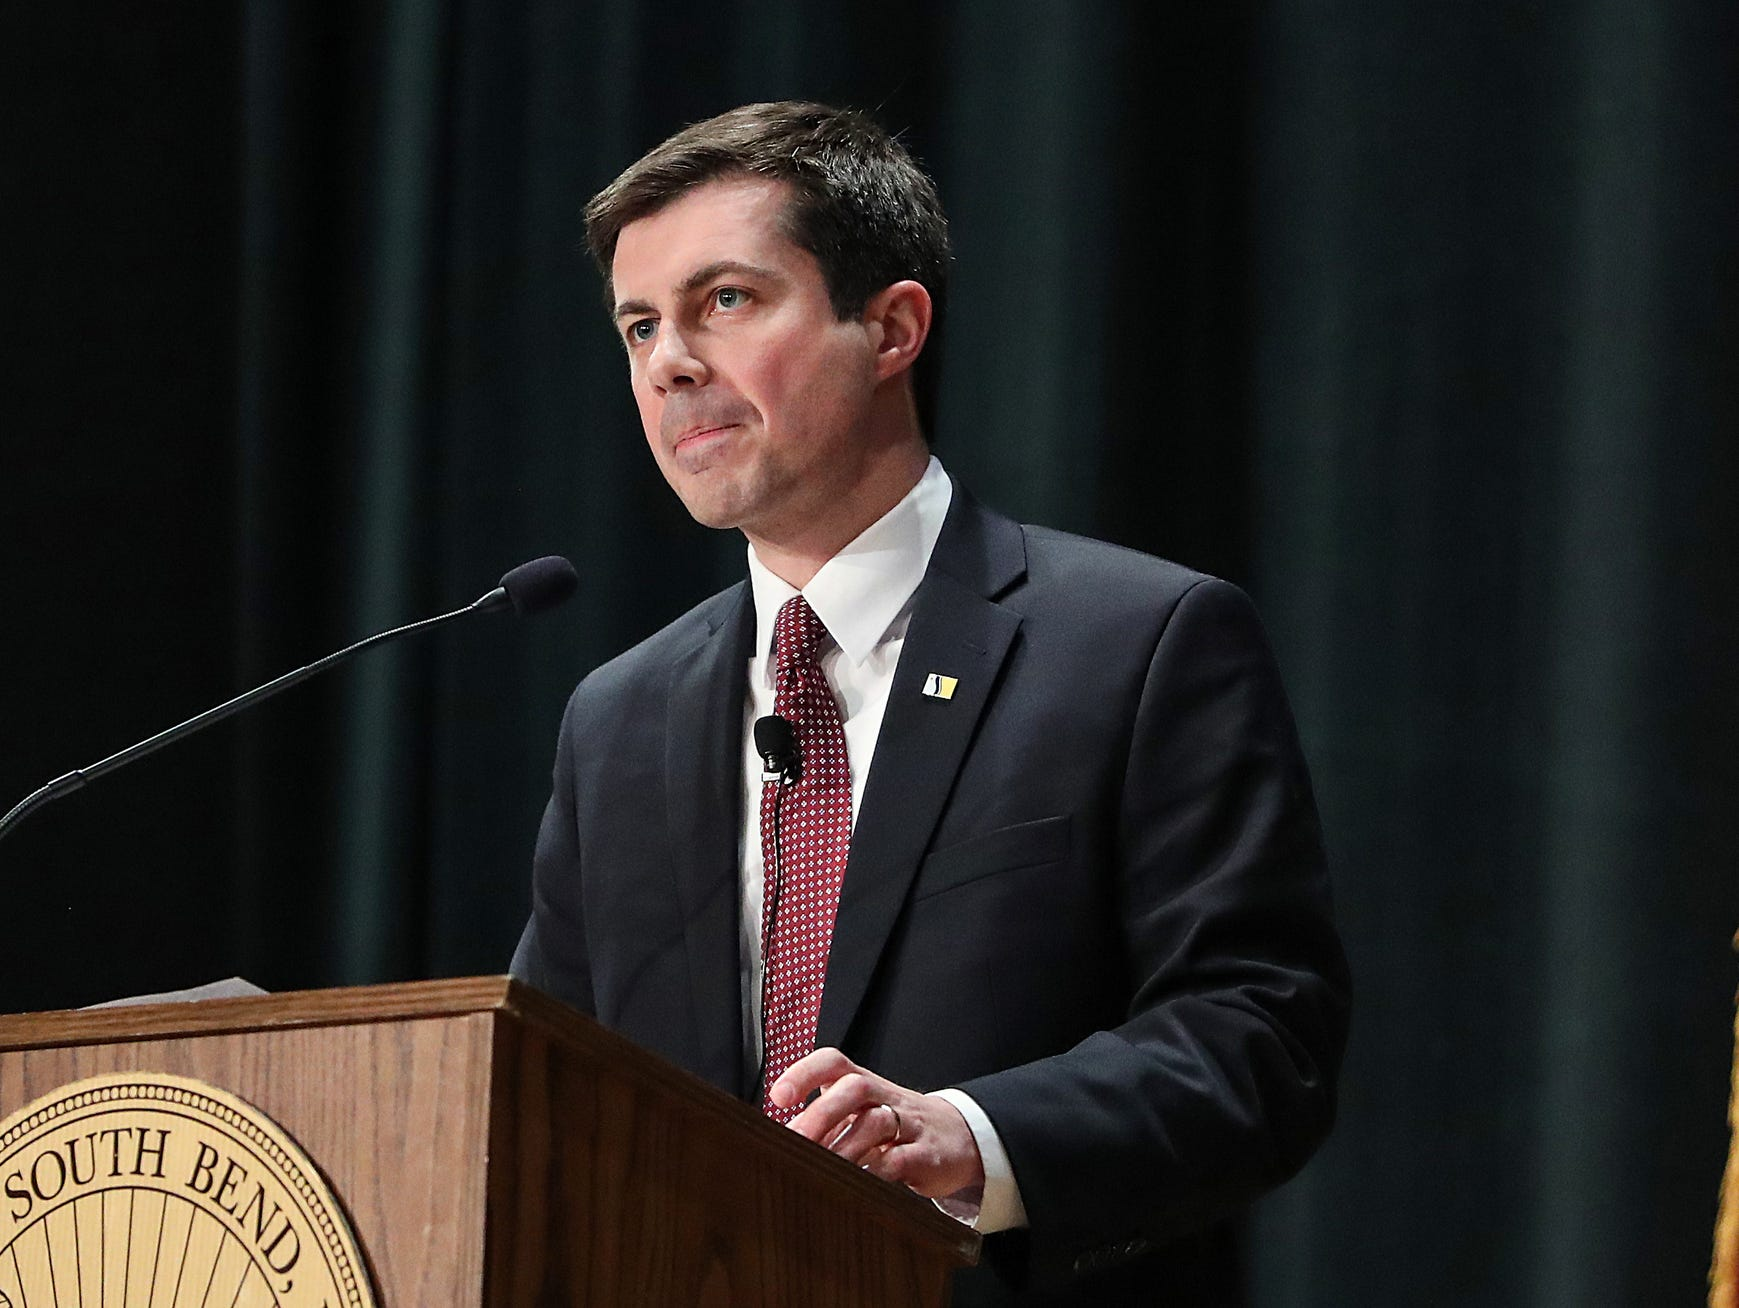 South Bend Mayor Pete Buttigieg delivers his final State of the City address in South Bend, Ind. on Tuesday, March 12, 2019. Two notable initiatives led by Buttgieg include the demolition or repair of 1,000 vacant, abandoned or dilapidated houses, and an infrastructure project that transformed South Bend's once struggling downtown into a more vibrant, inviting place.